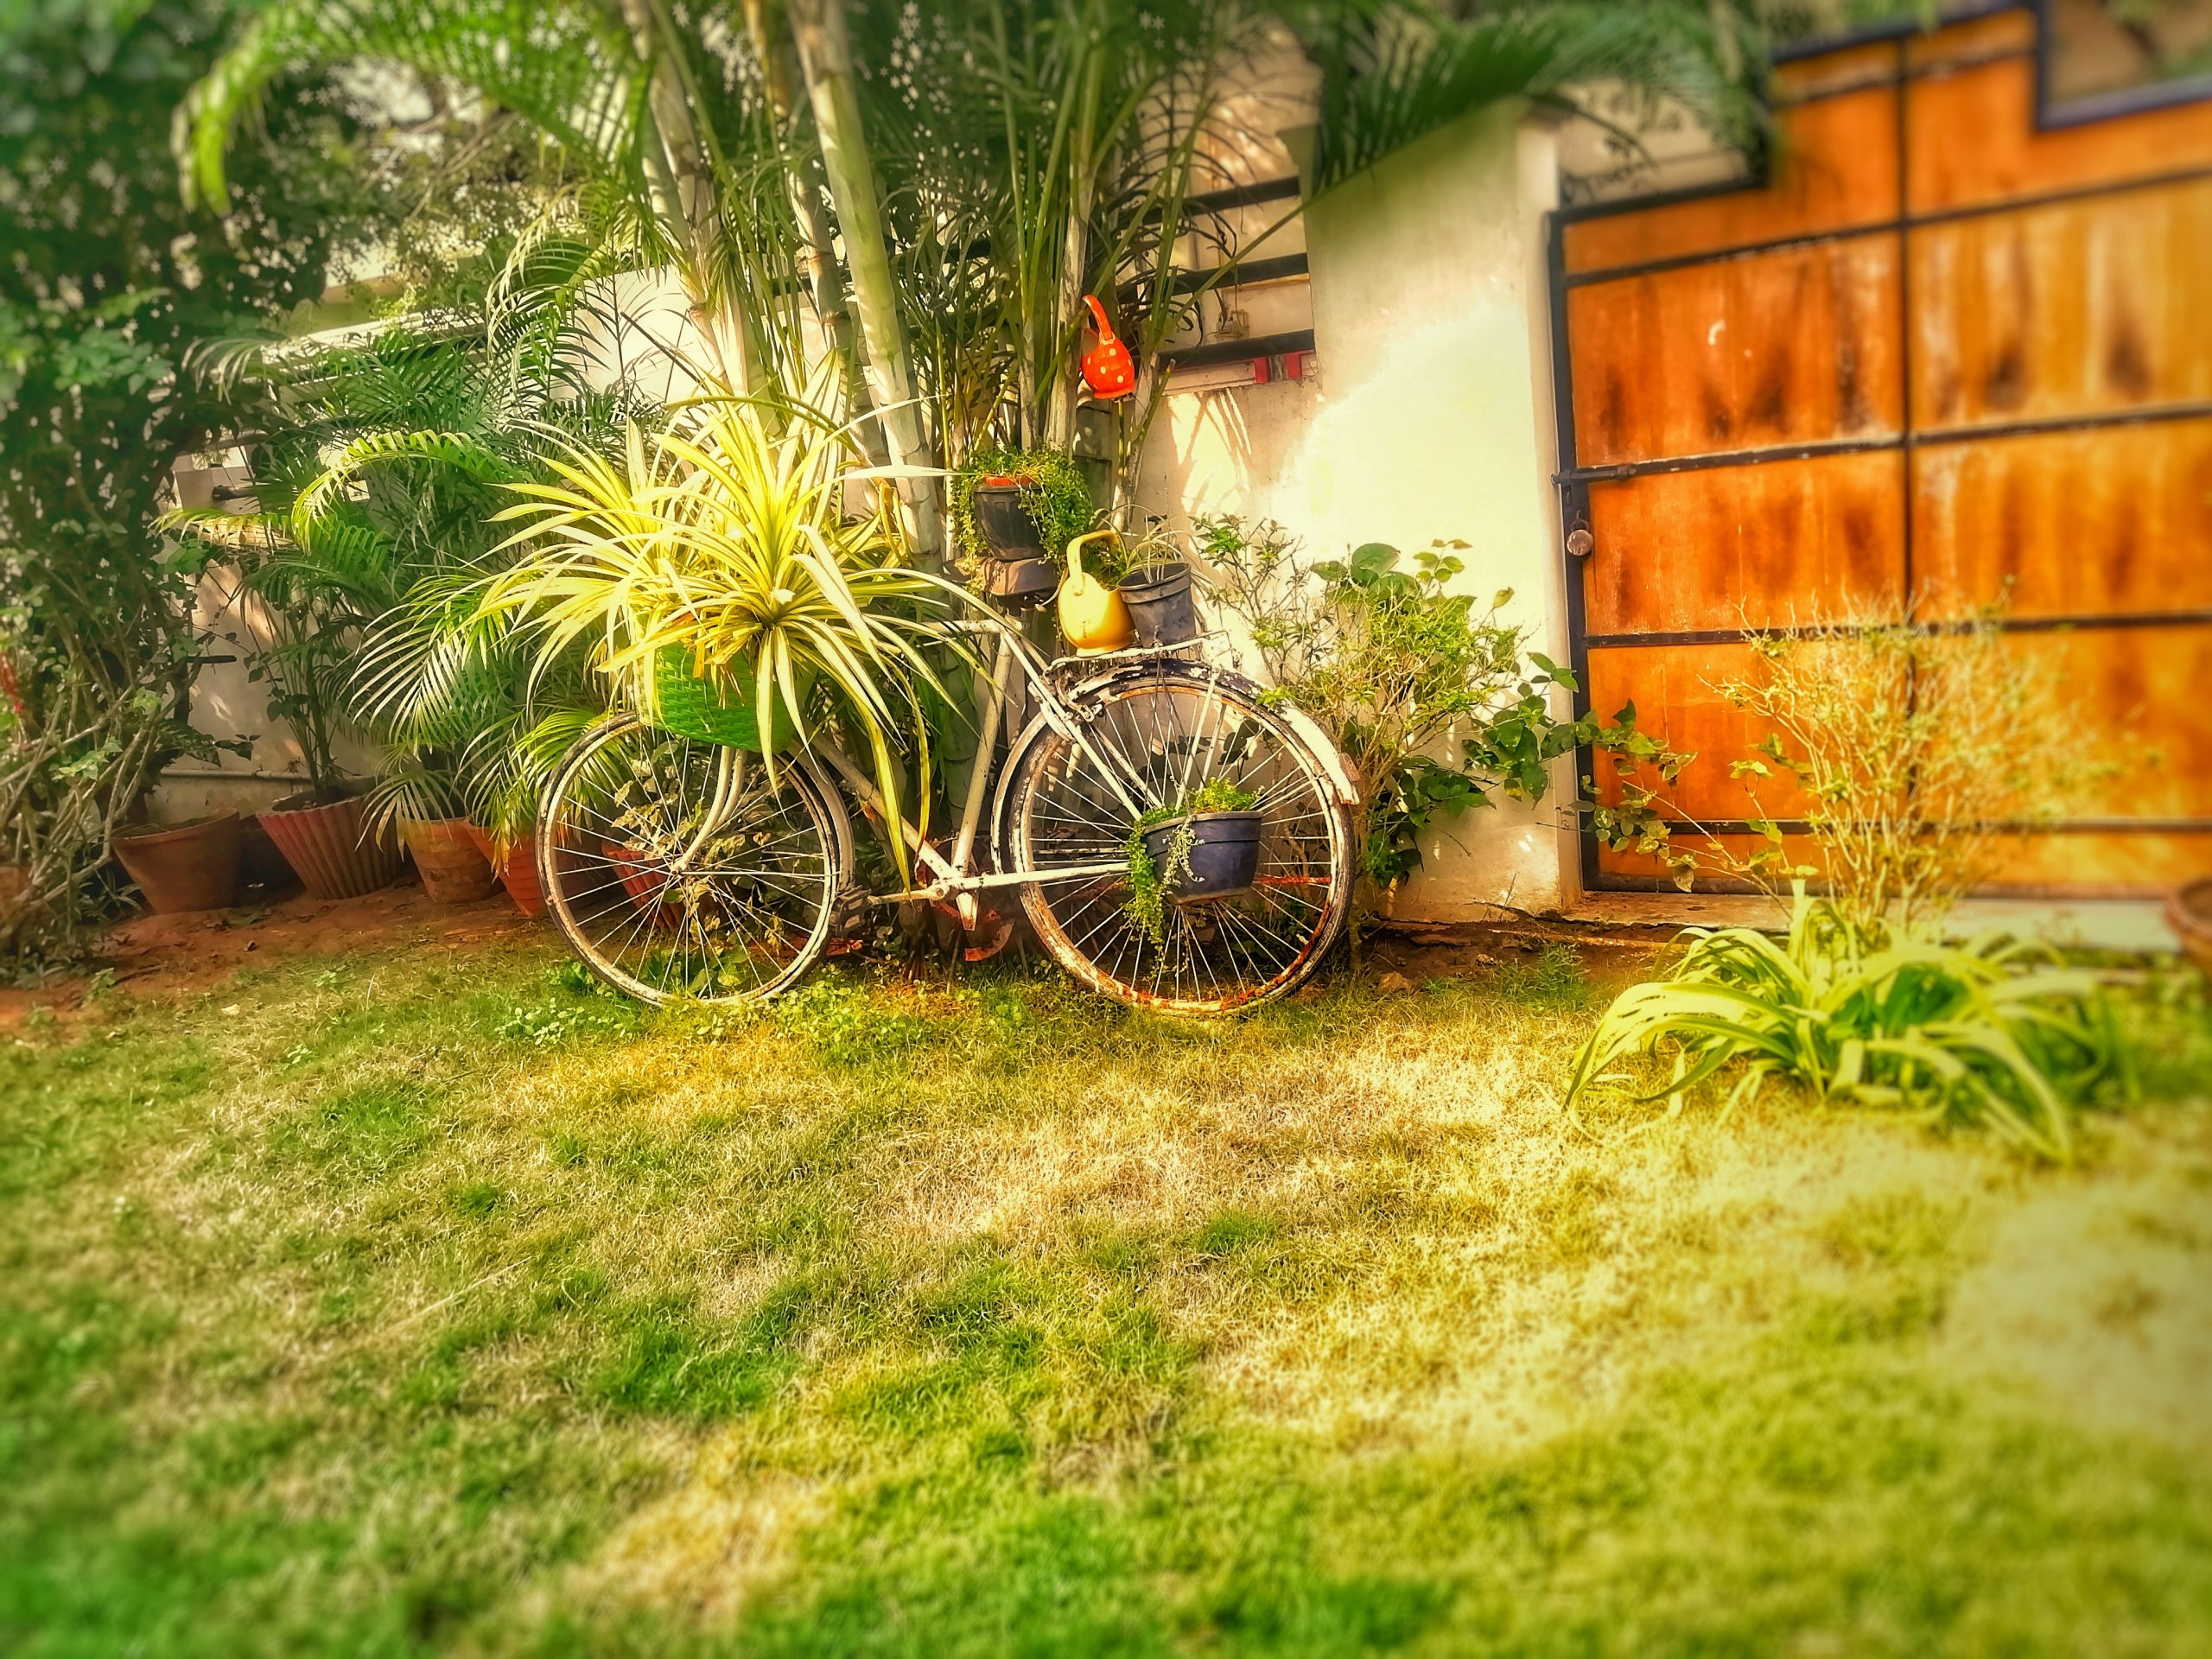 A bicycle in house garden